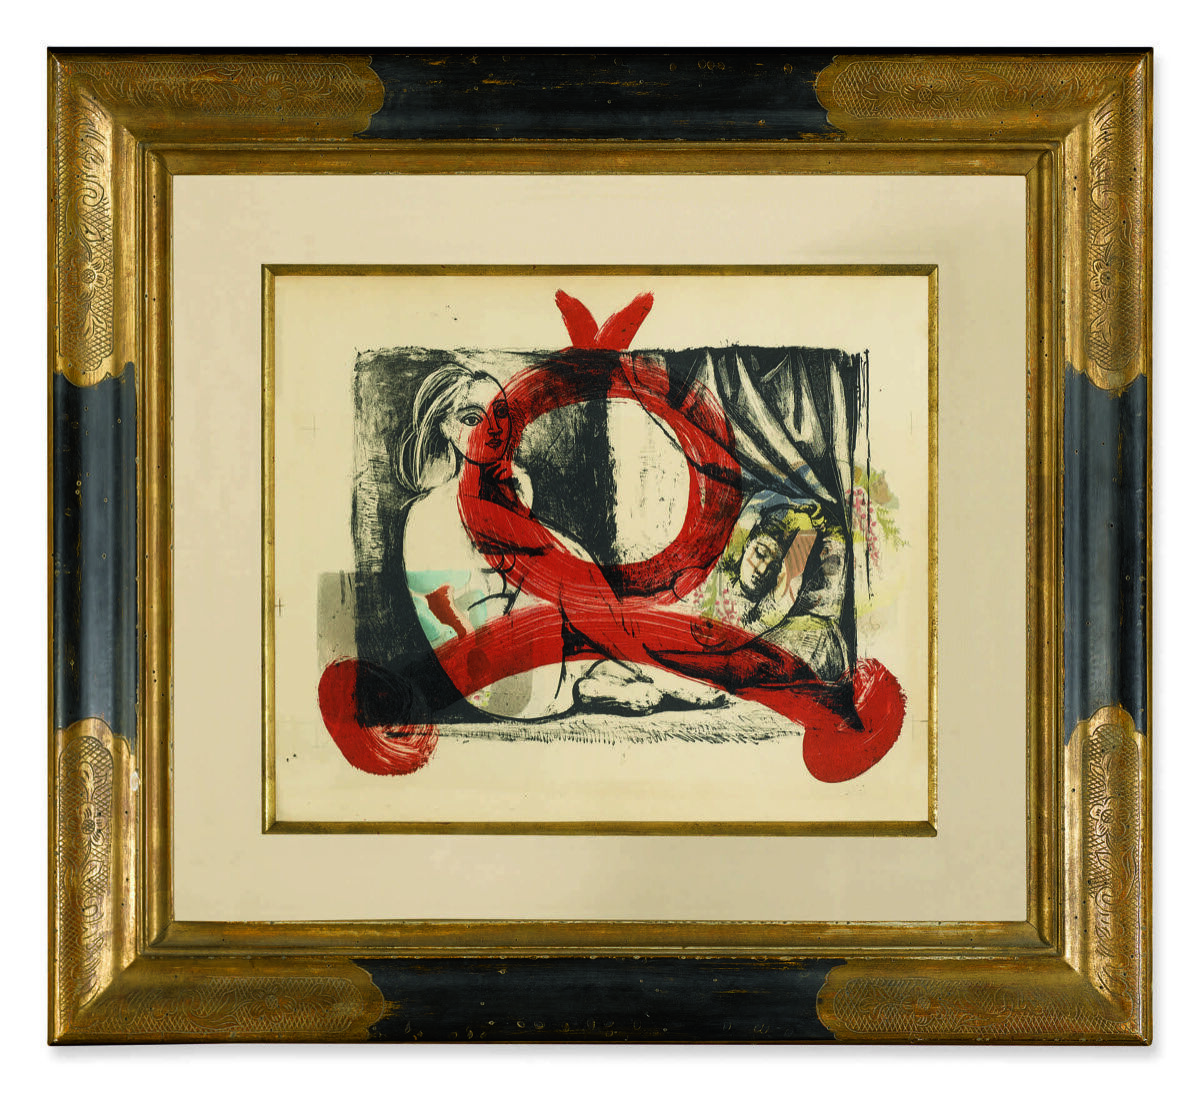 Pablo Picasso, Arabesque, n.d. Courtesy of Sotheby's.